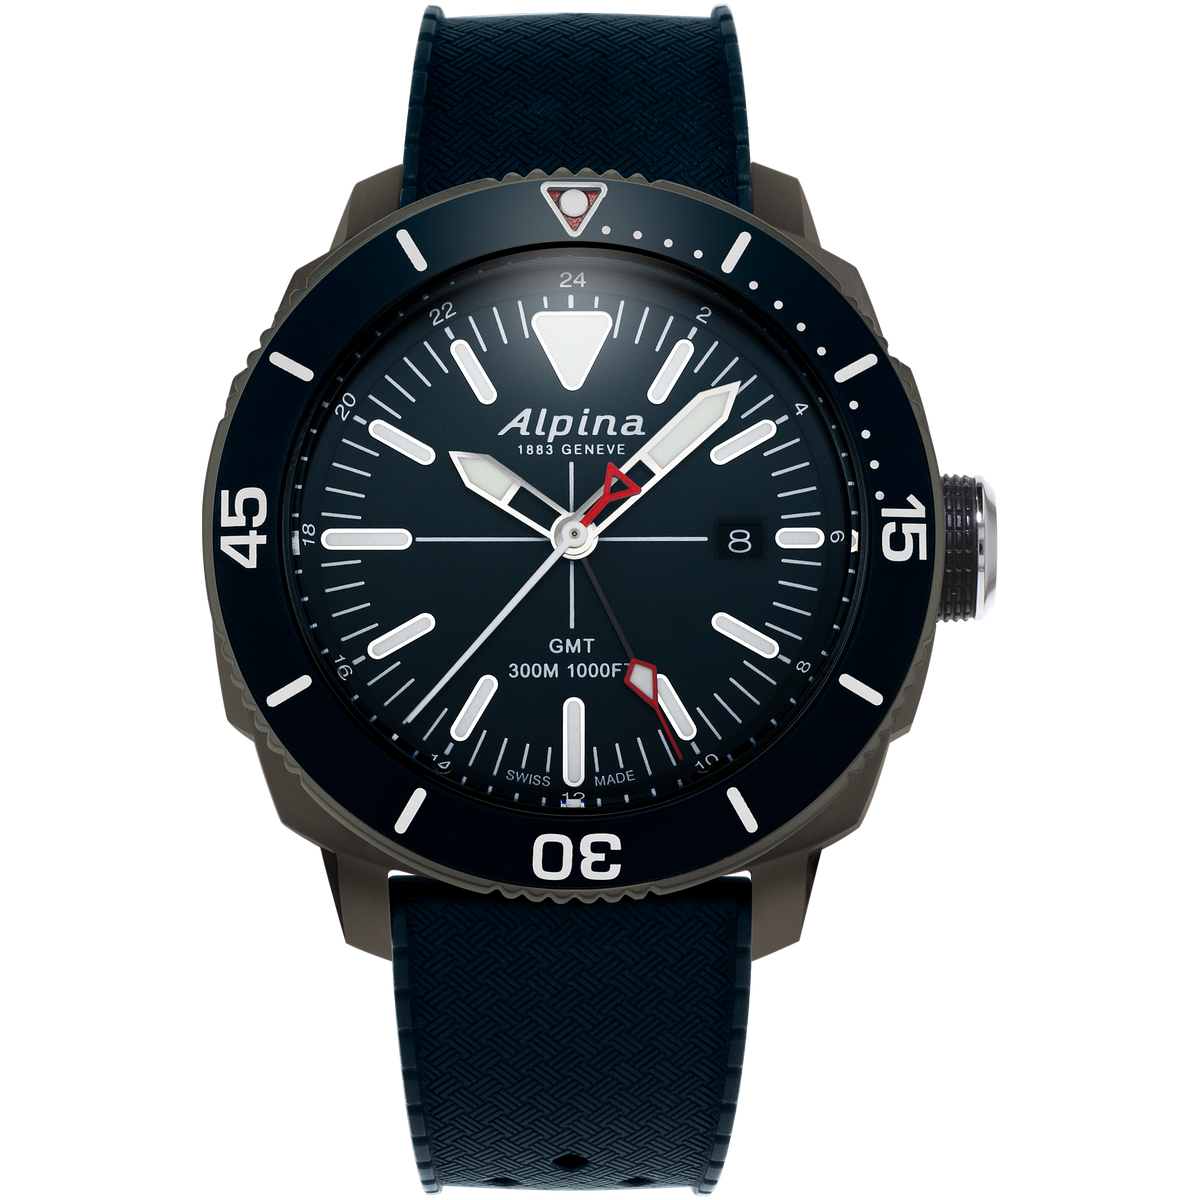 Alpina - SEASTRONG DIVER GMT - Stainless Steel Titanium PVD with Blue Dial/Bezel